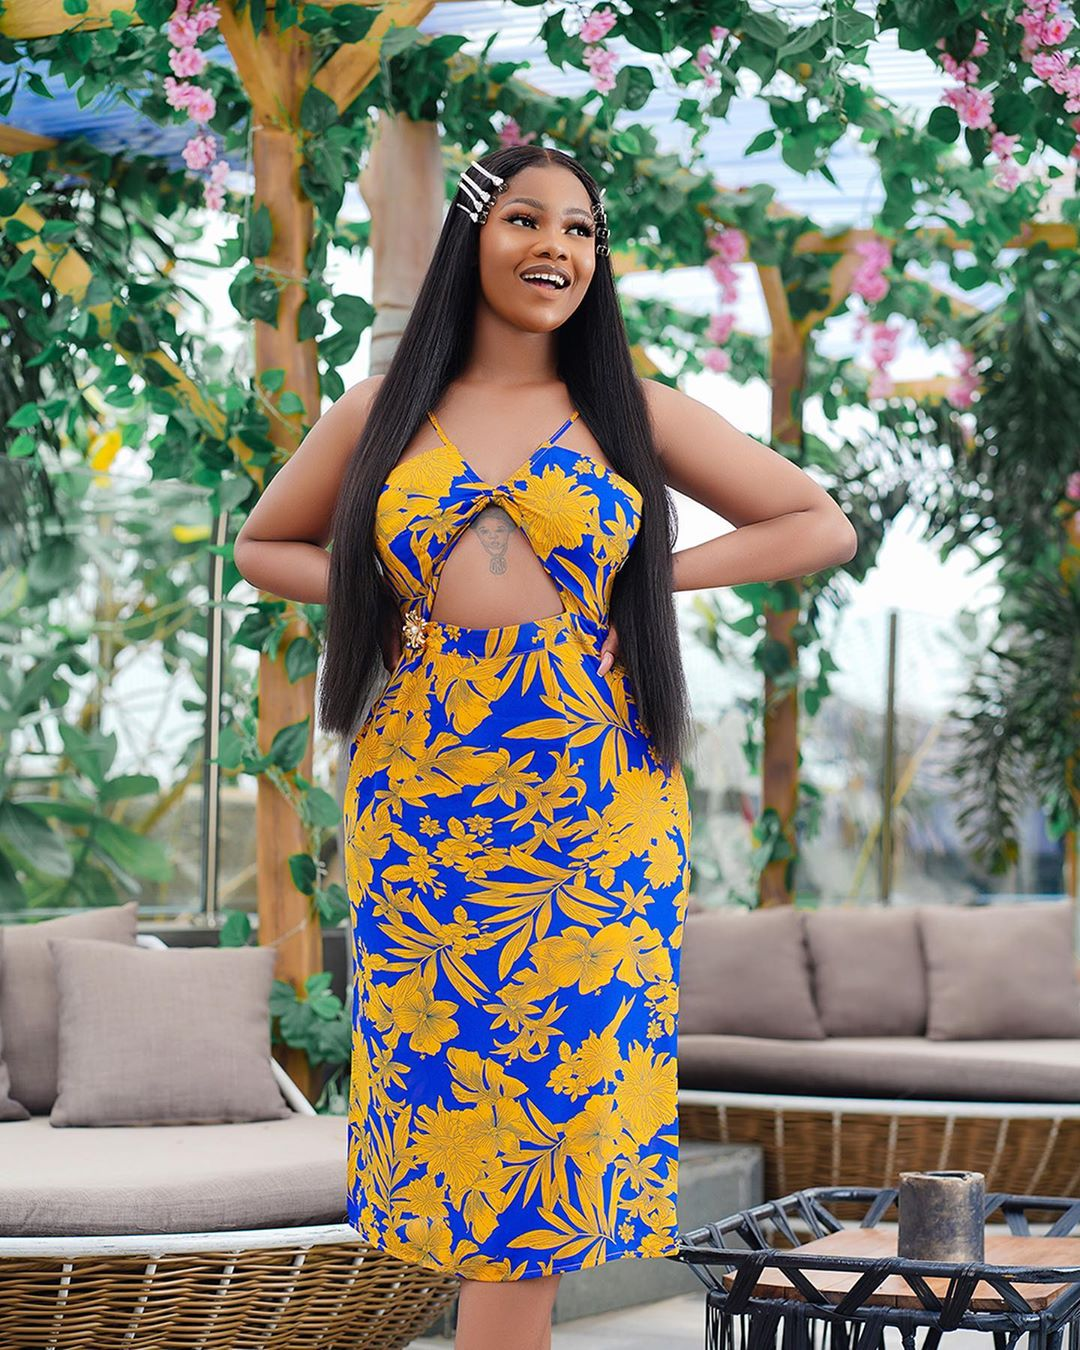 Tacha pleads after being slammed for receiving Benz gift from fans